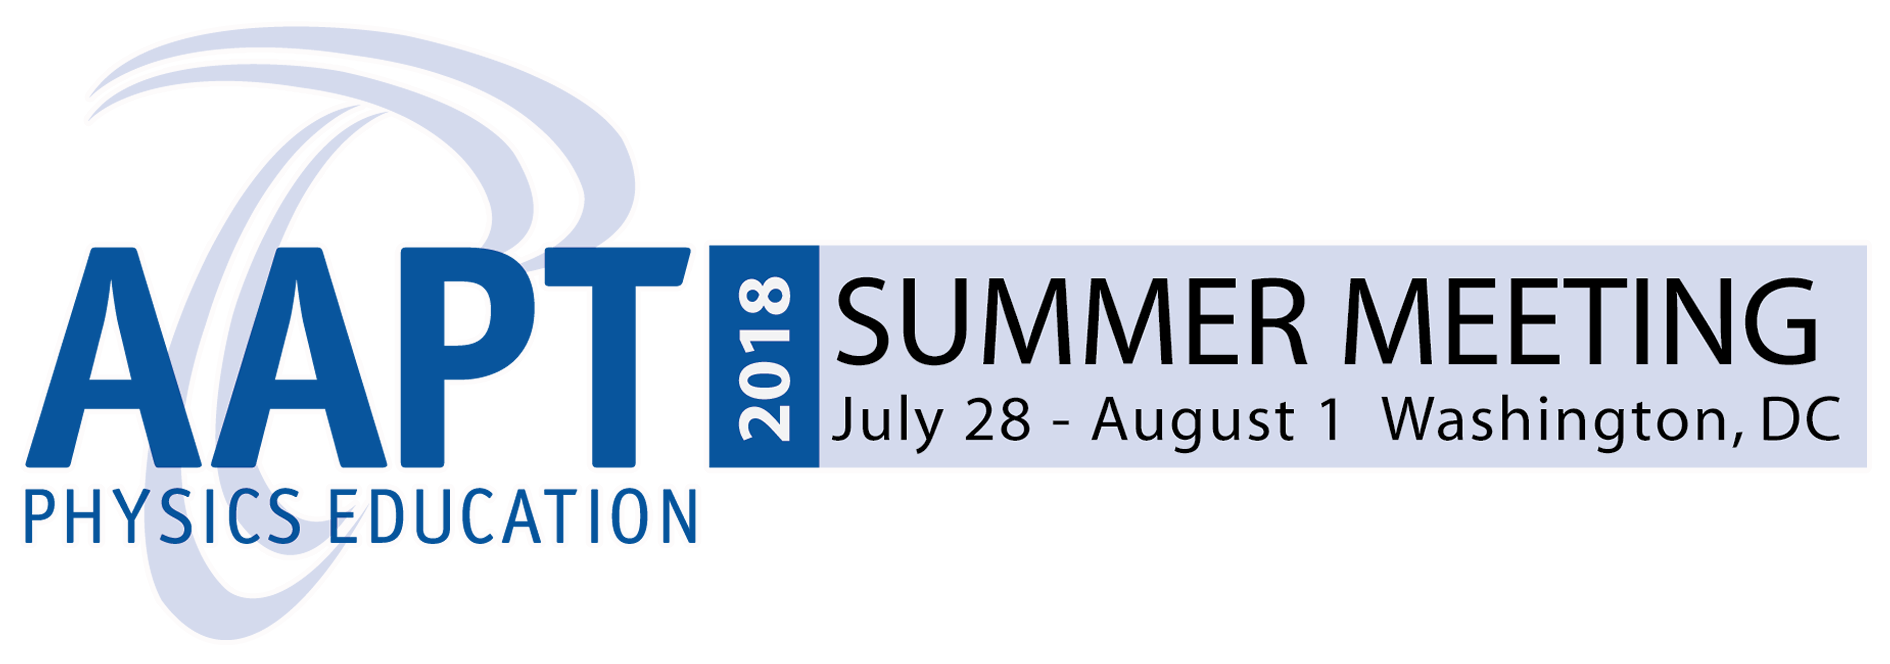 2018 Summer Meeting Sessions Page Remote Control Relay To Dc Motor Forward And Reverse Namely Aapt In Washington